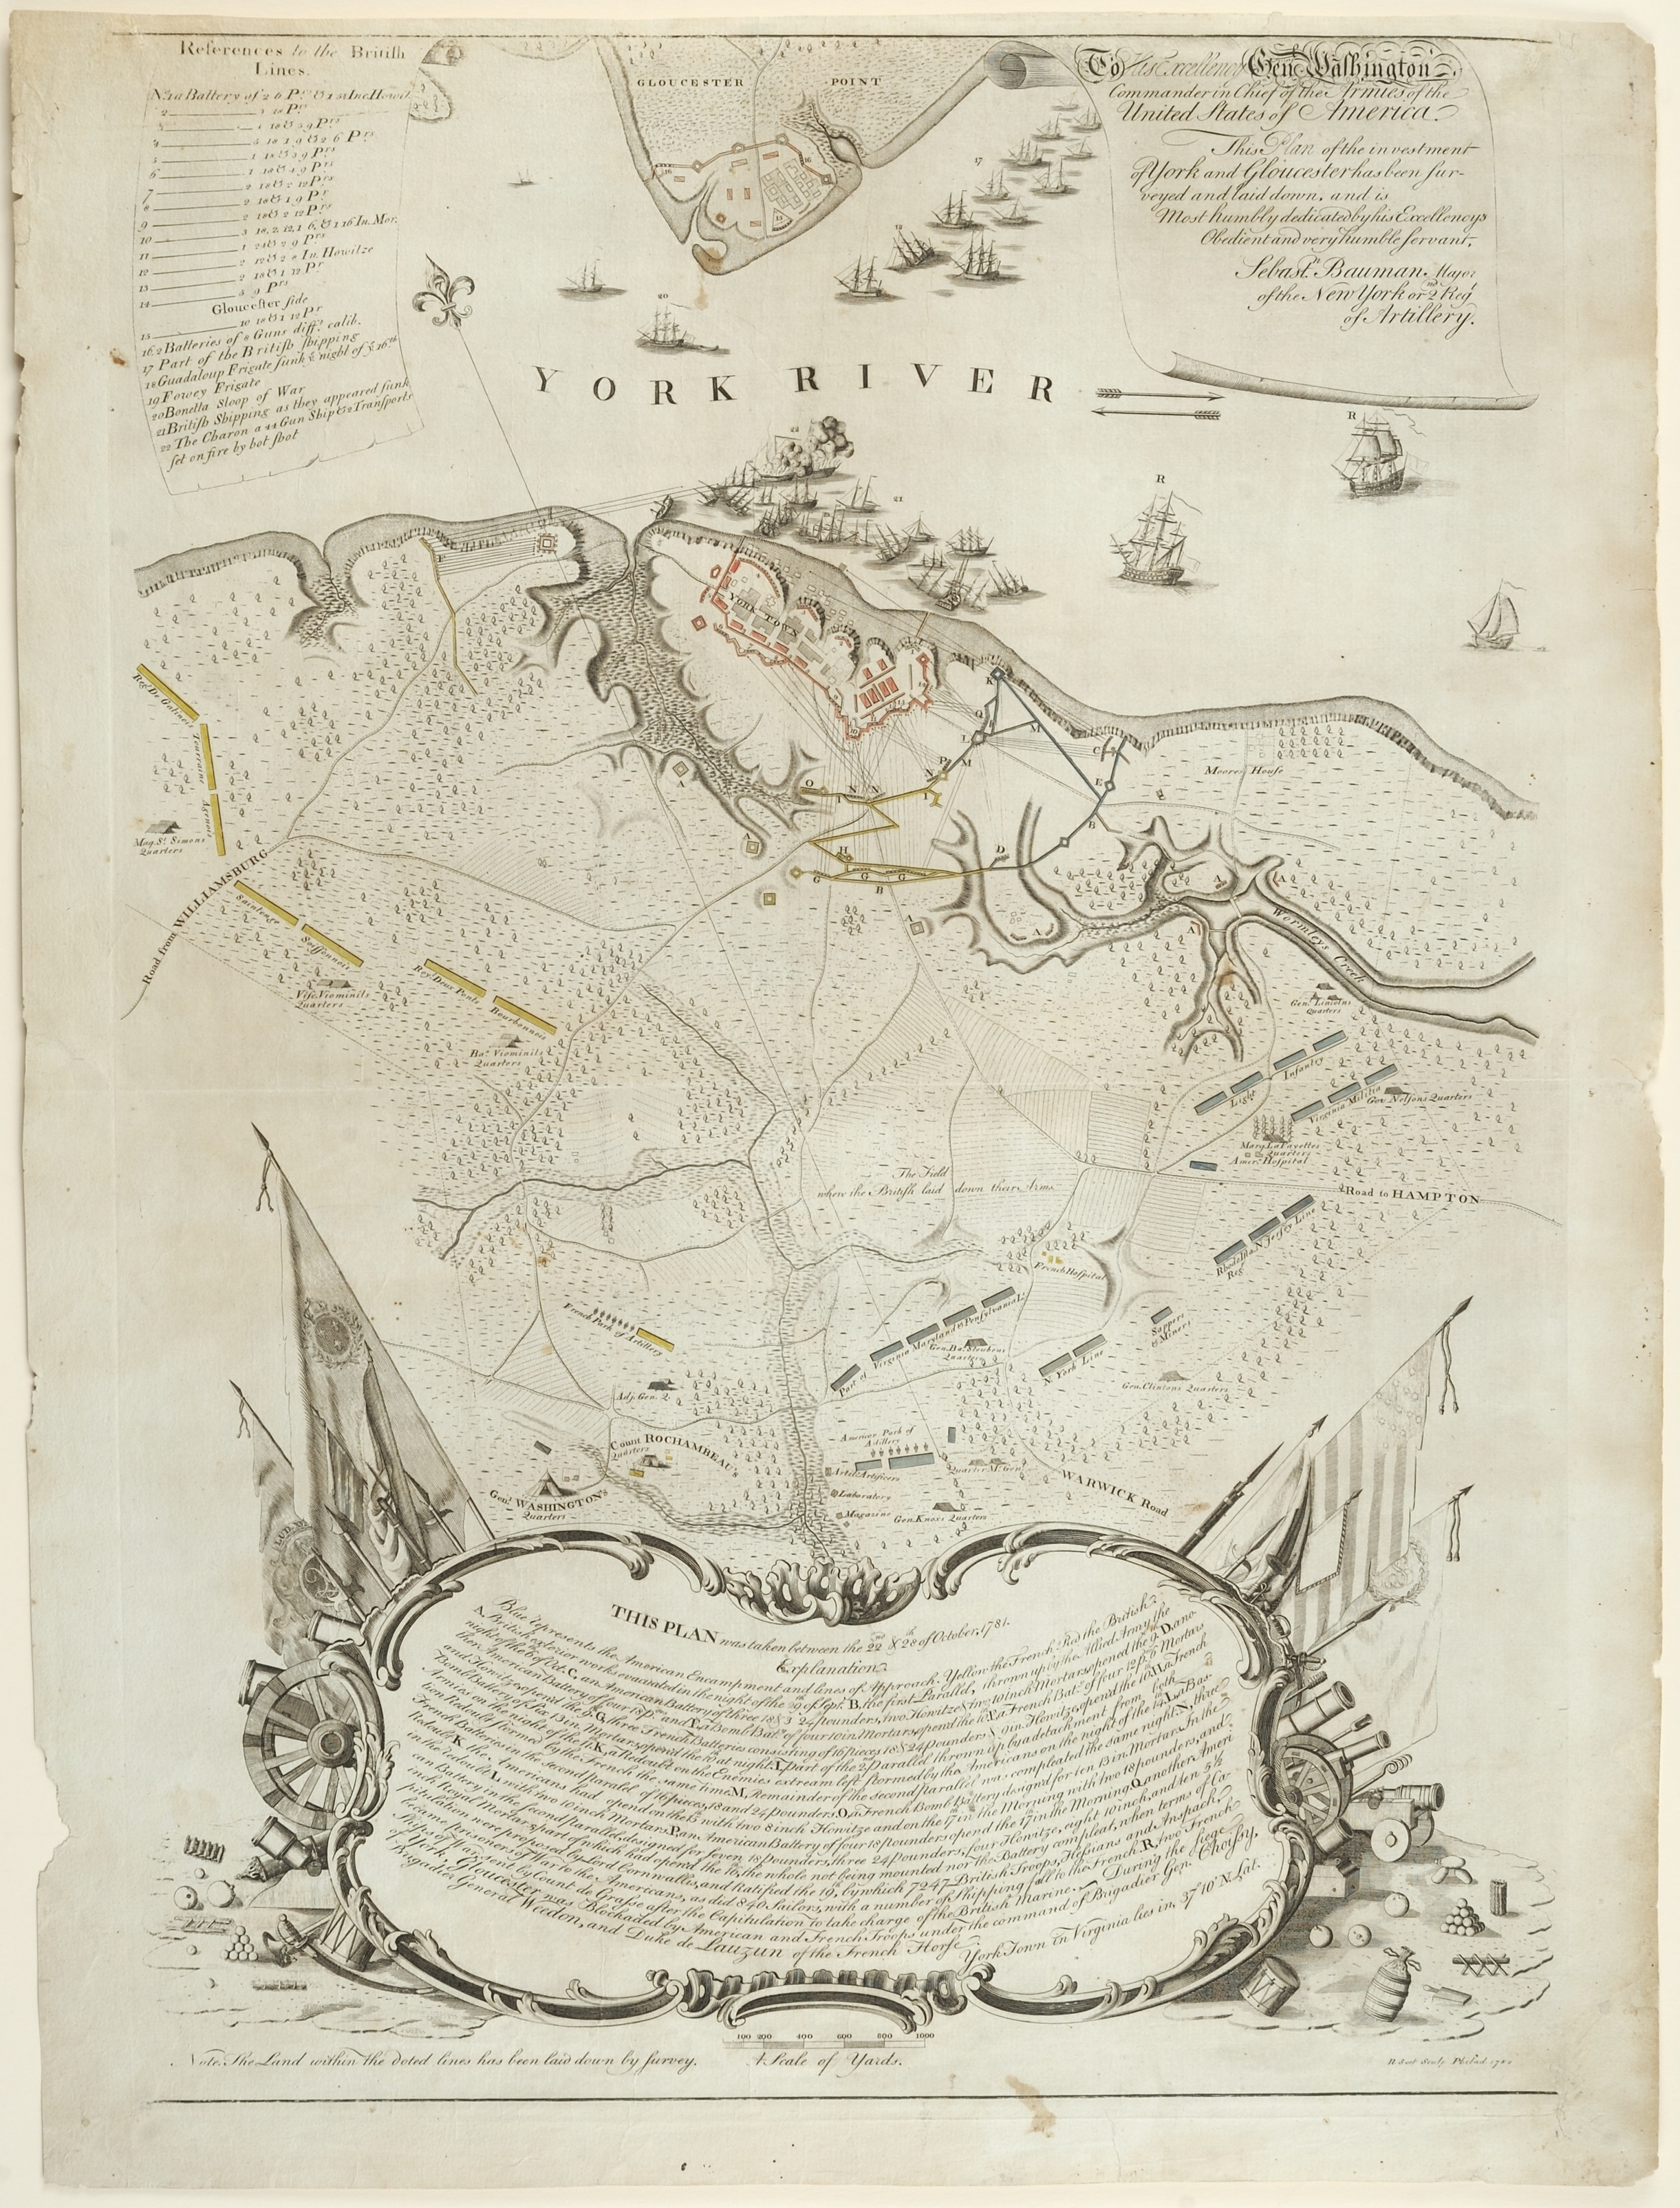 Plan of the Investment of York and Gloucester, Sebastian Bauman, cartographer, Philadelphia: Engraved and Printed by Robert Scot, 1782